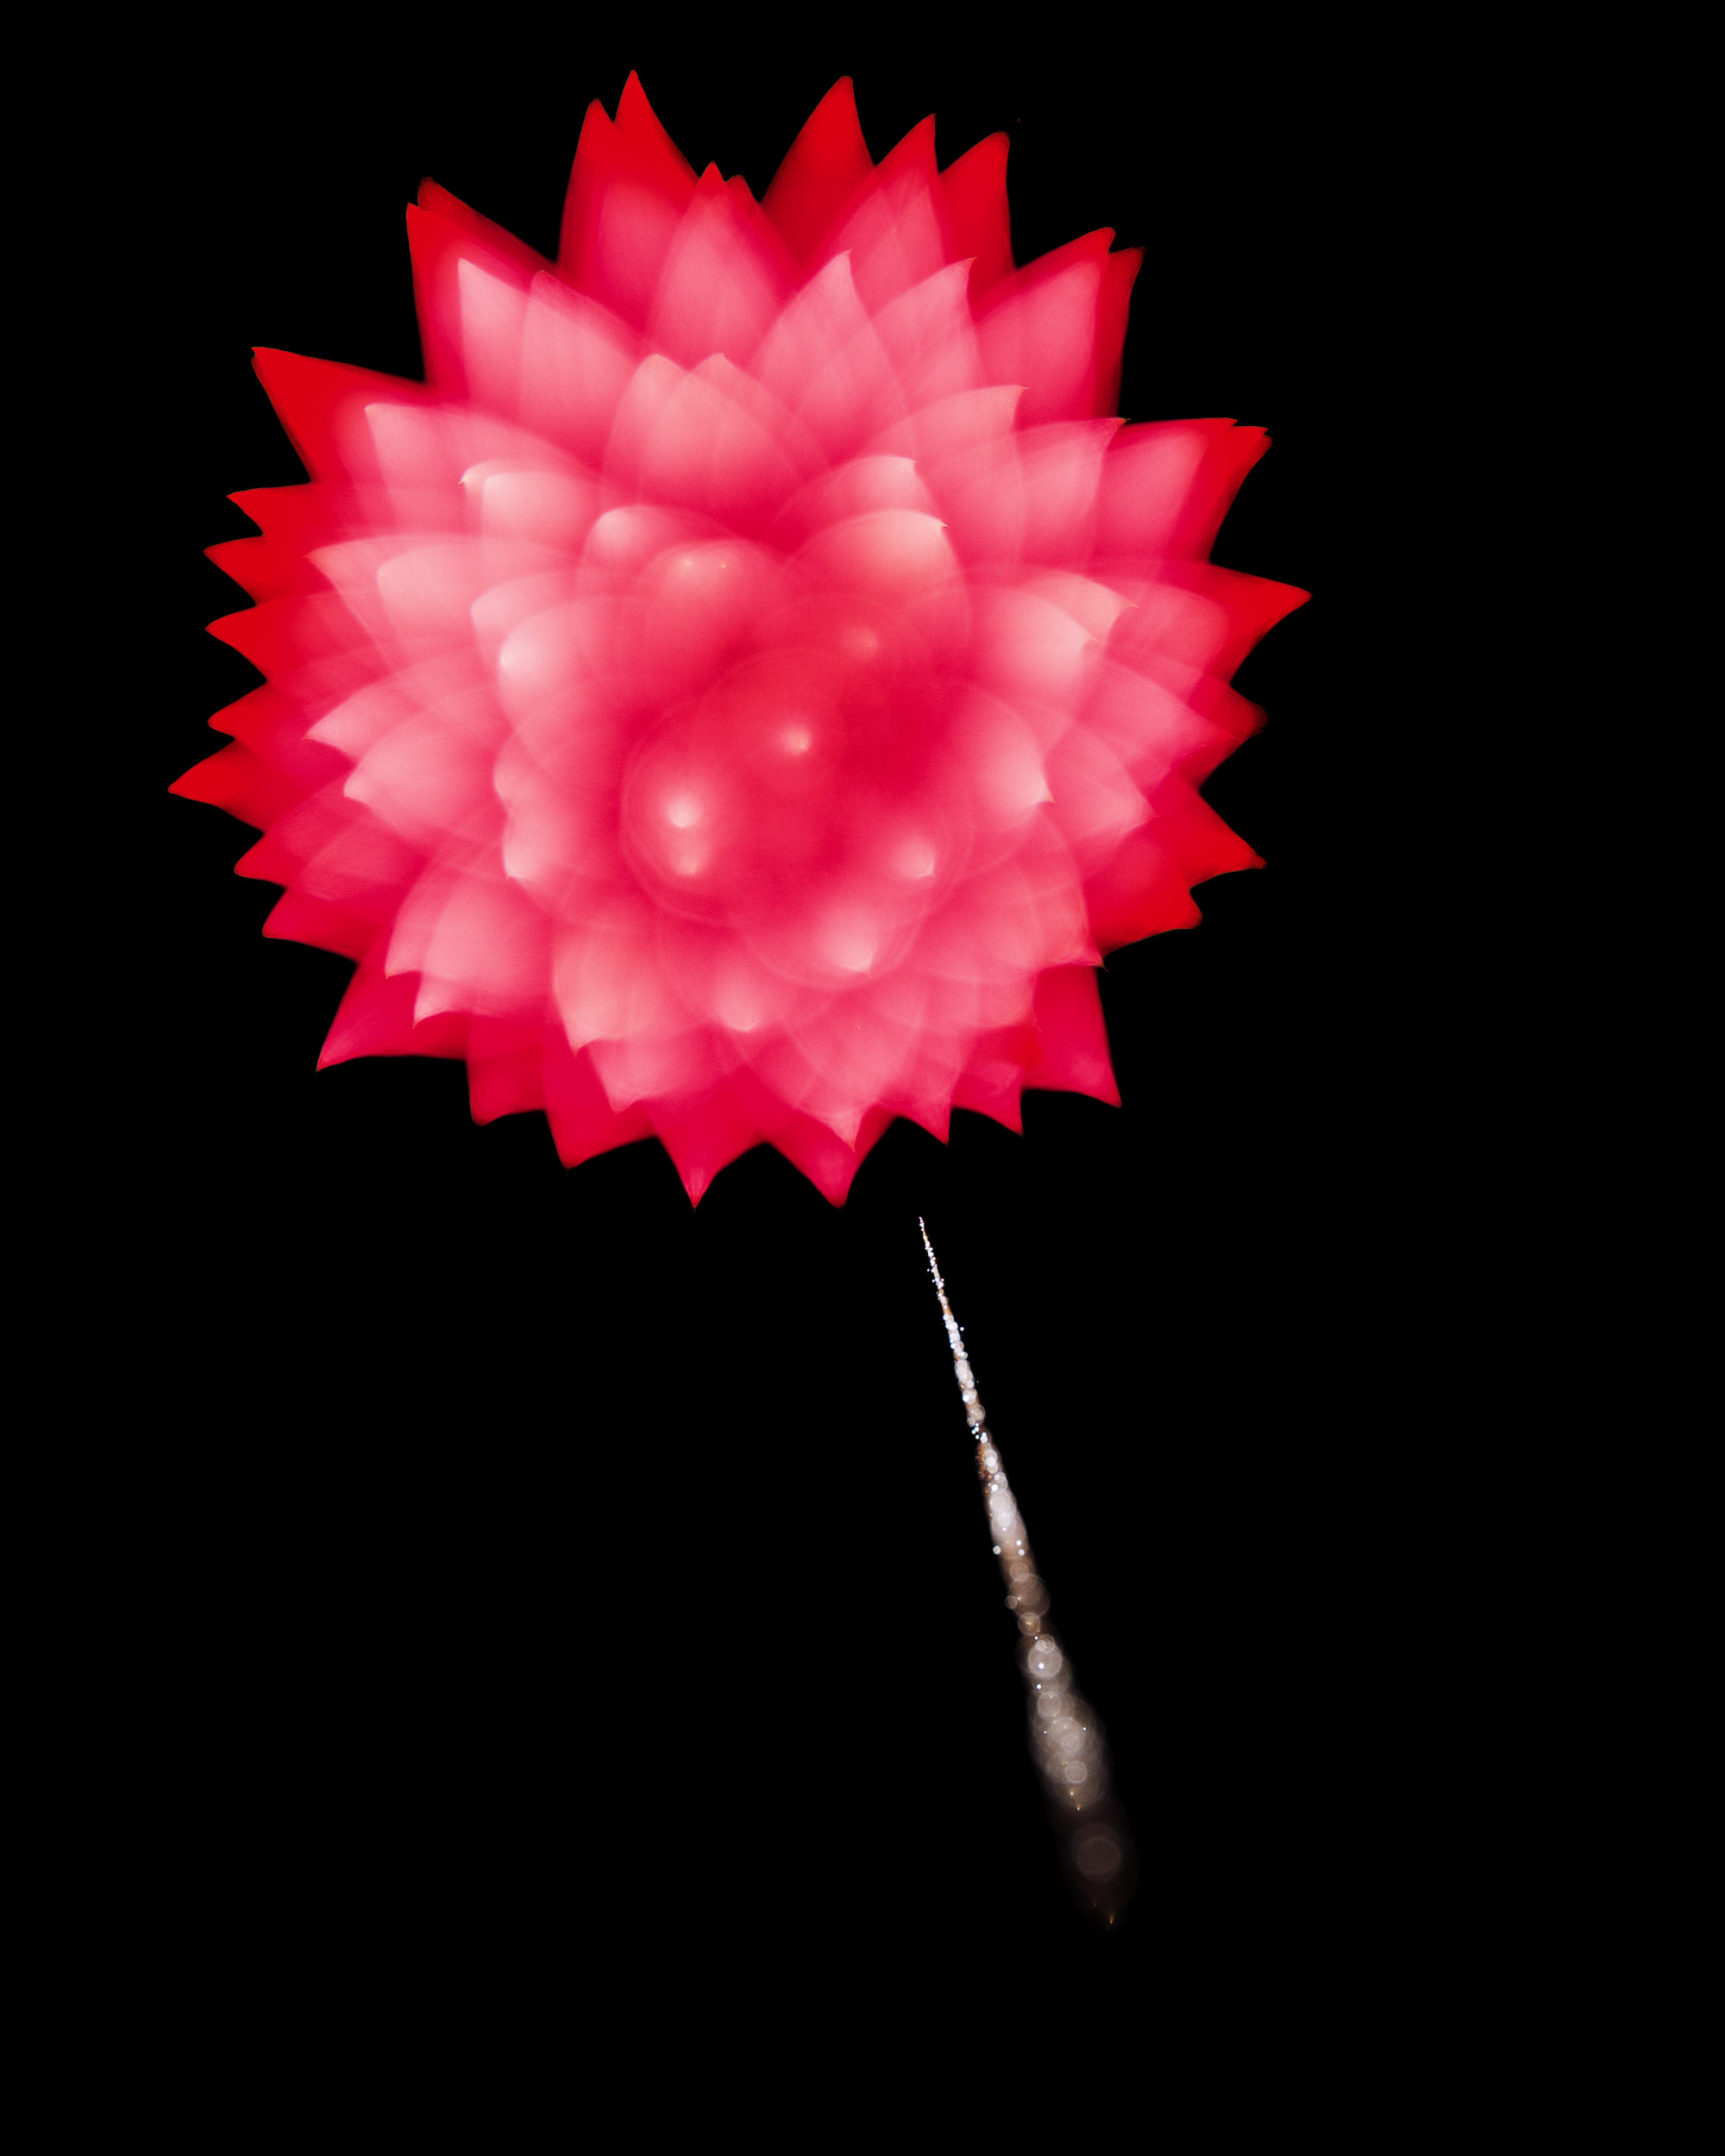 Firework Photo, Night Flower 38, WIRED Magazine